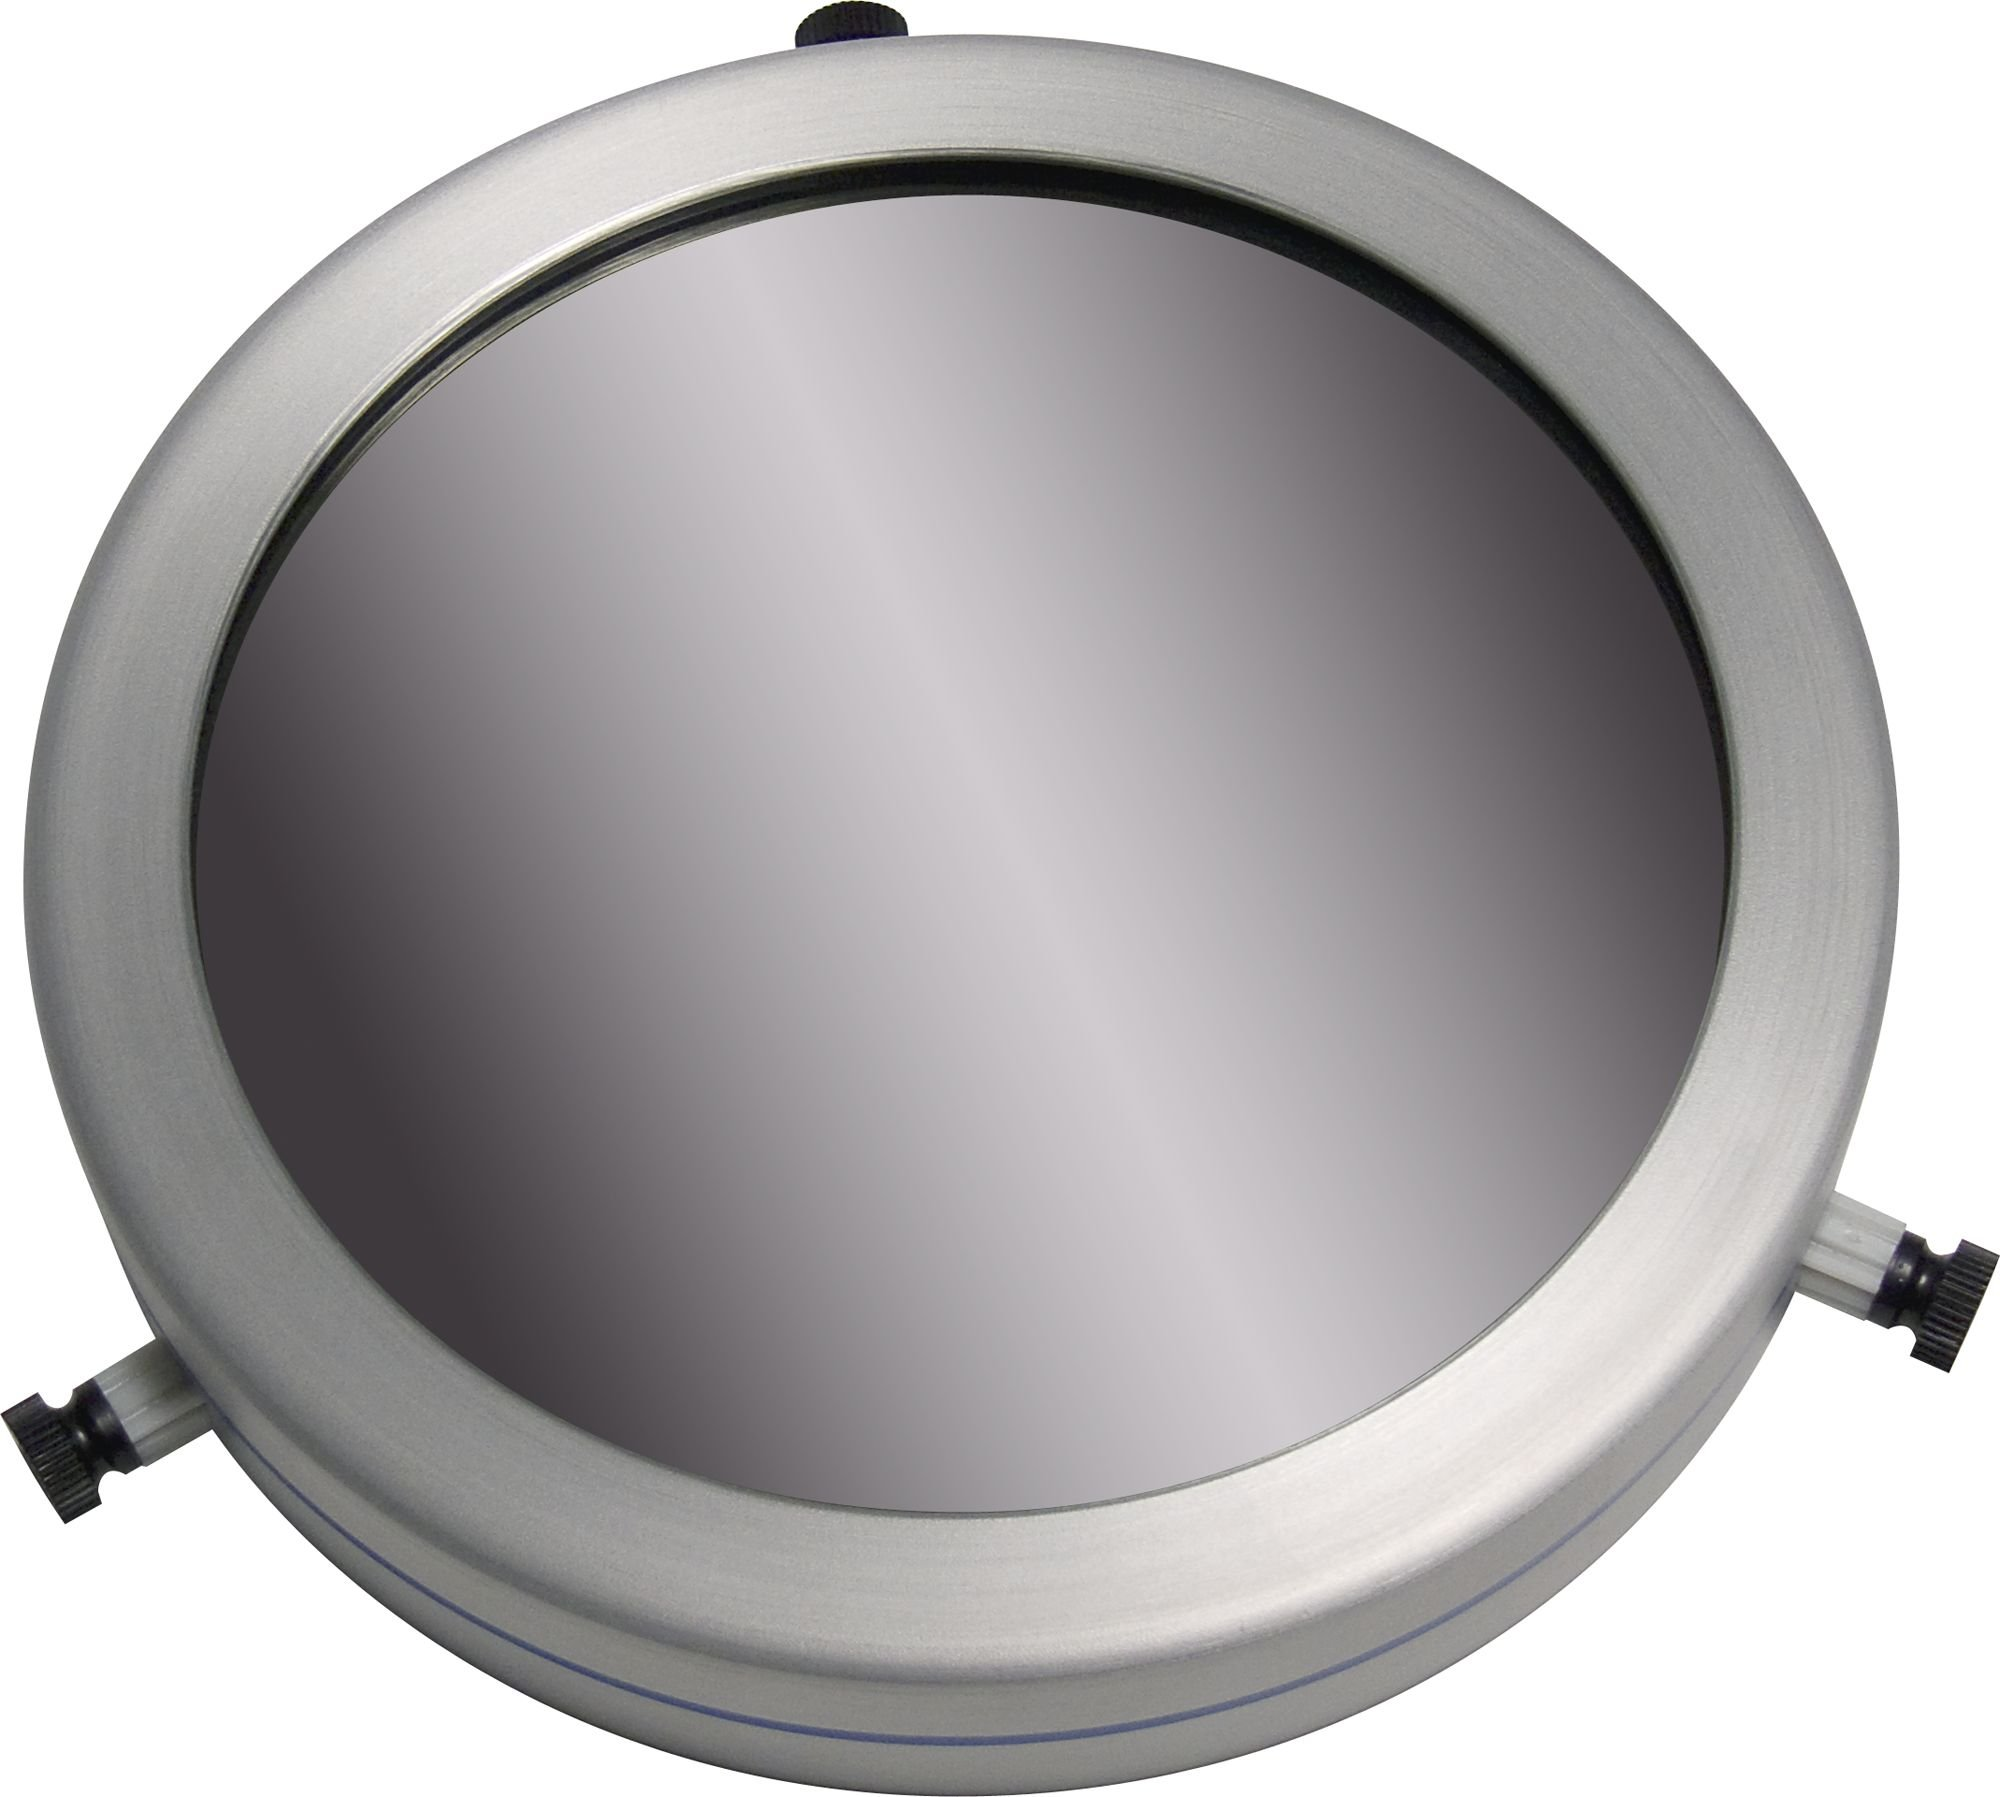 Orion 07710 5.81-Inch ID Full Aperture Glass Telescope Solar Filter (Silver) by Orion